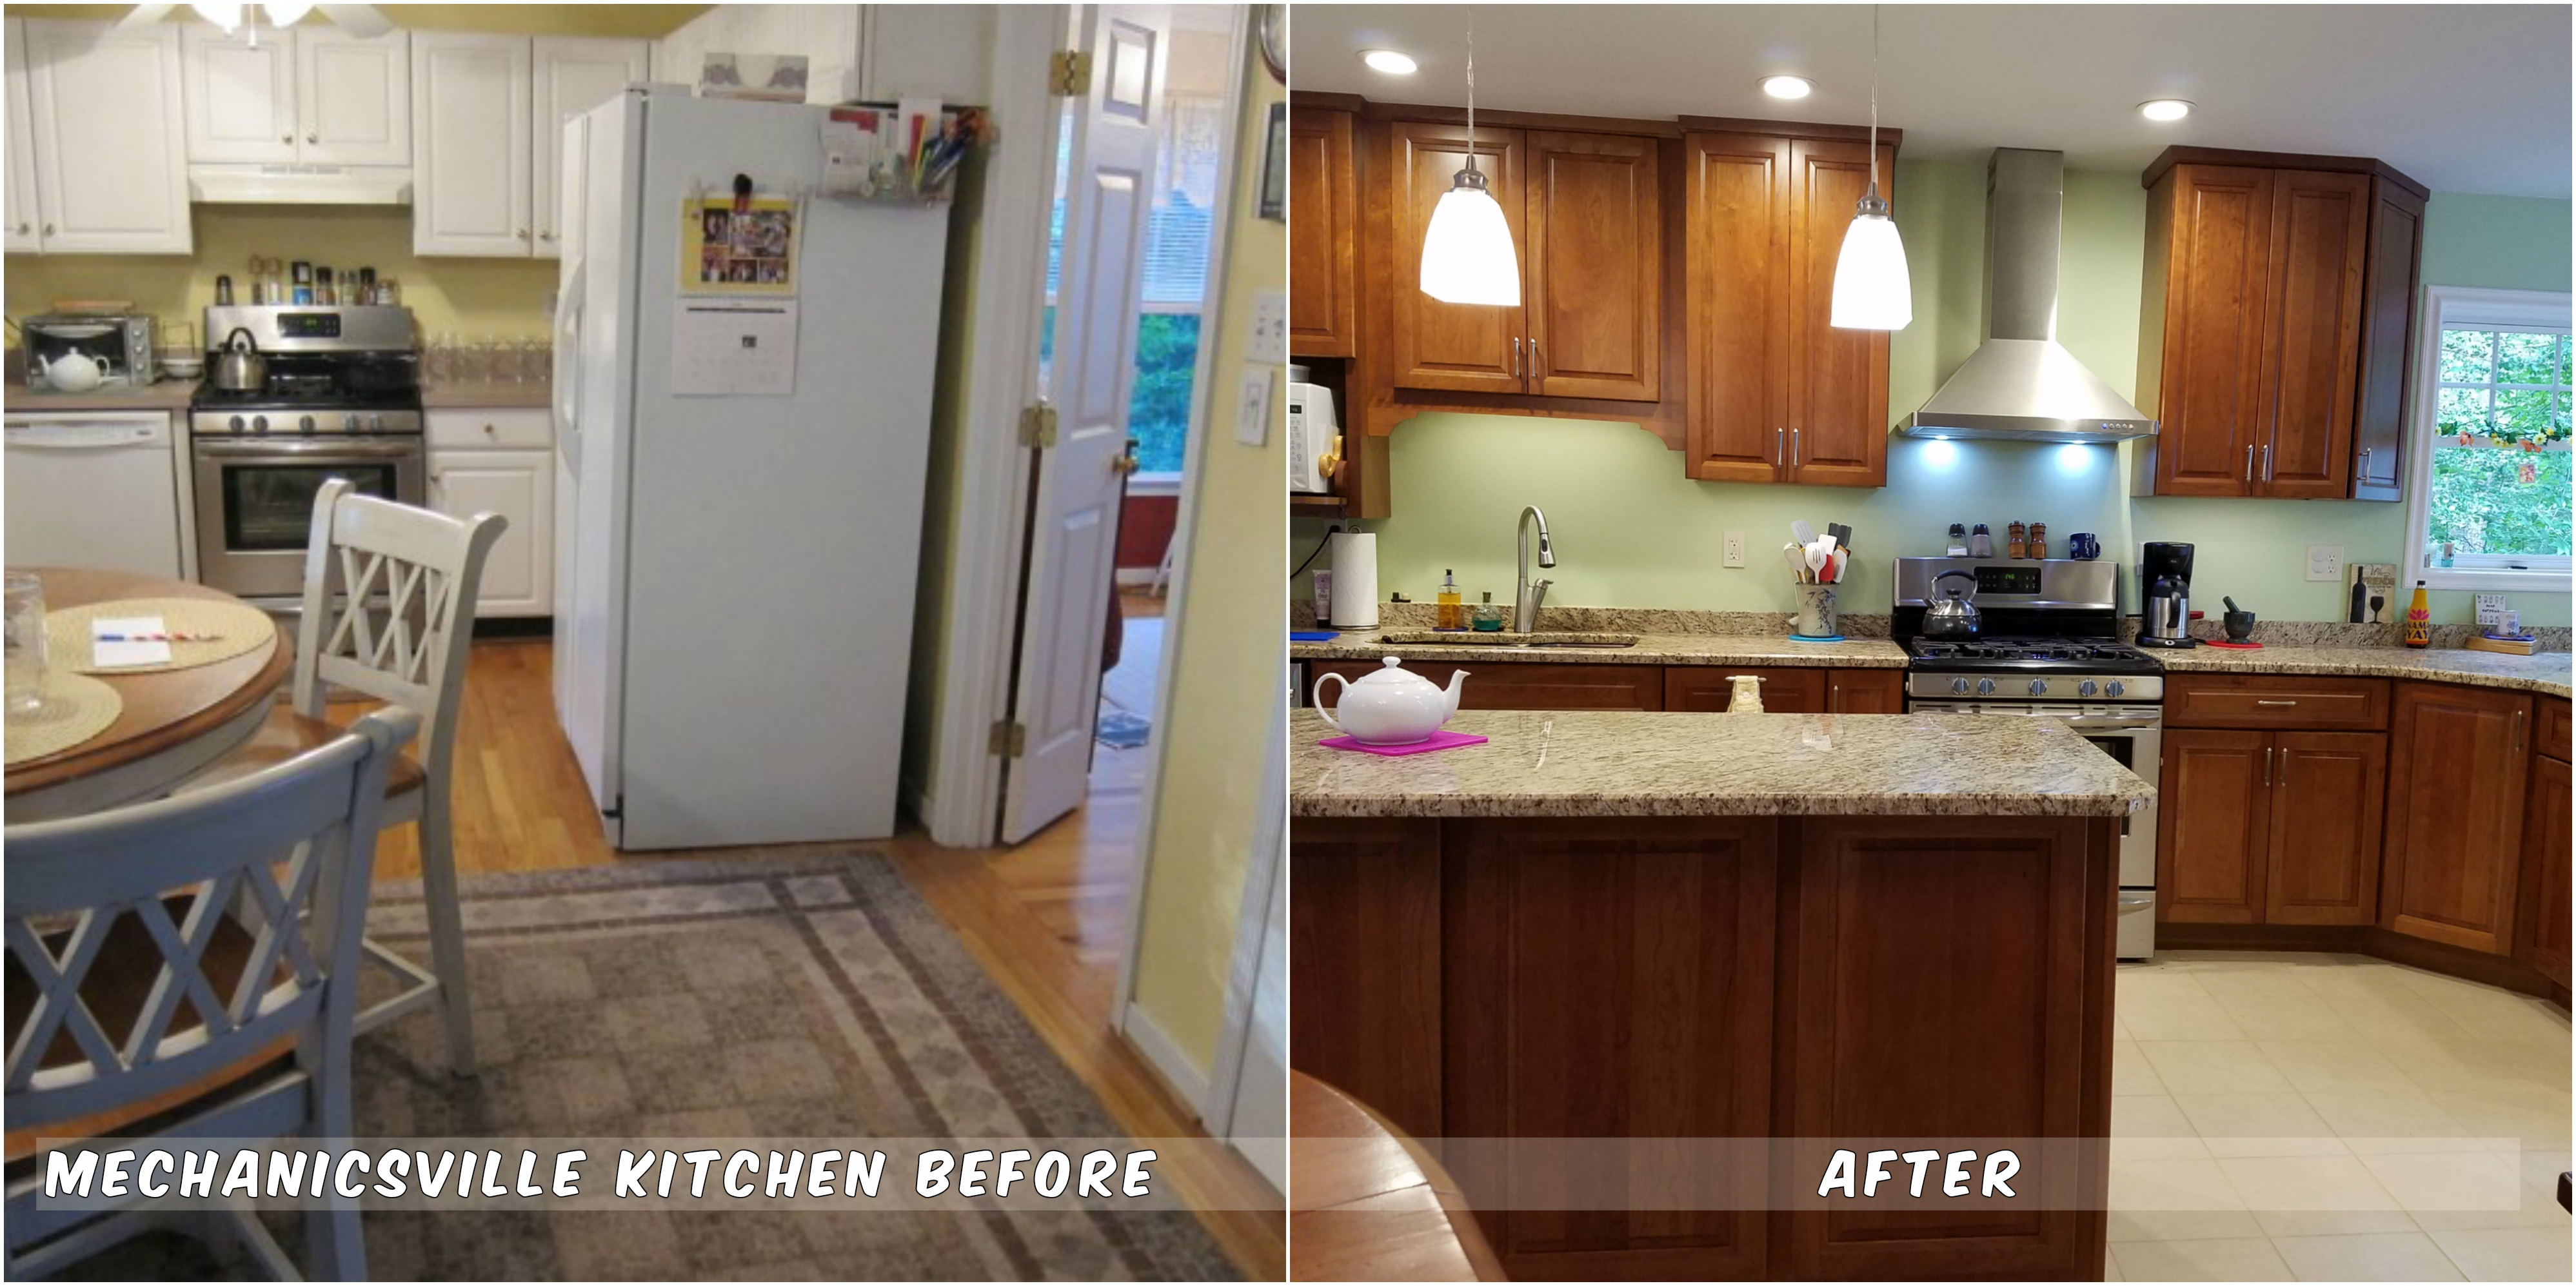 Before and after of kitchen remodel by ODI